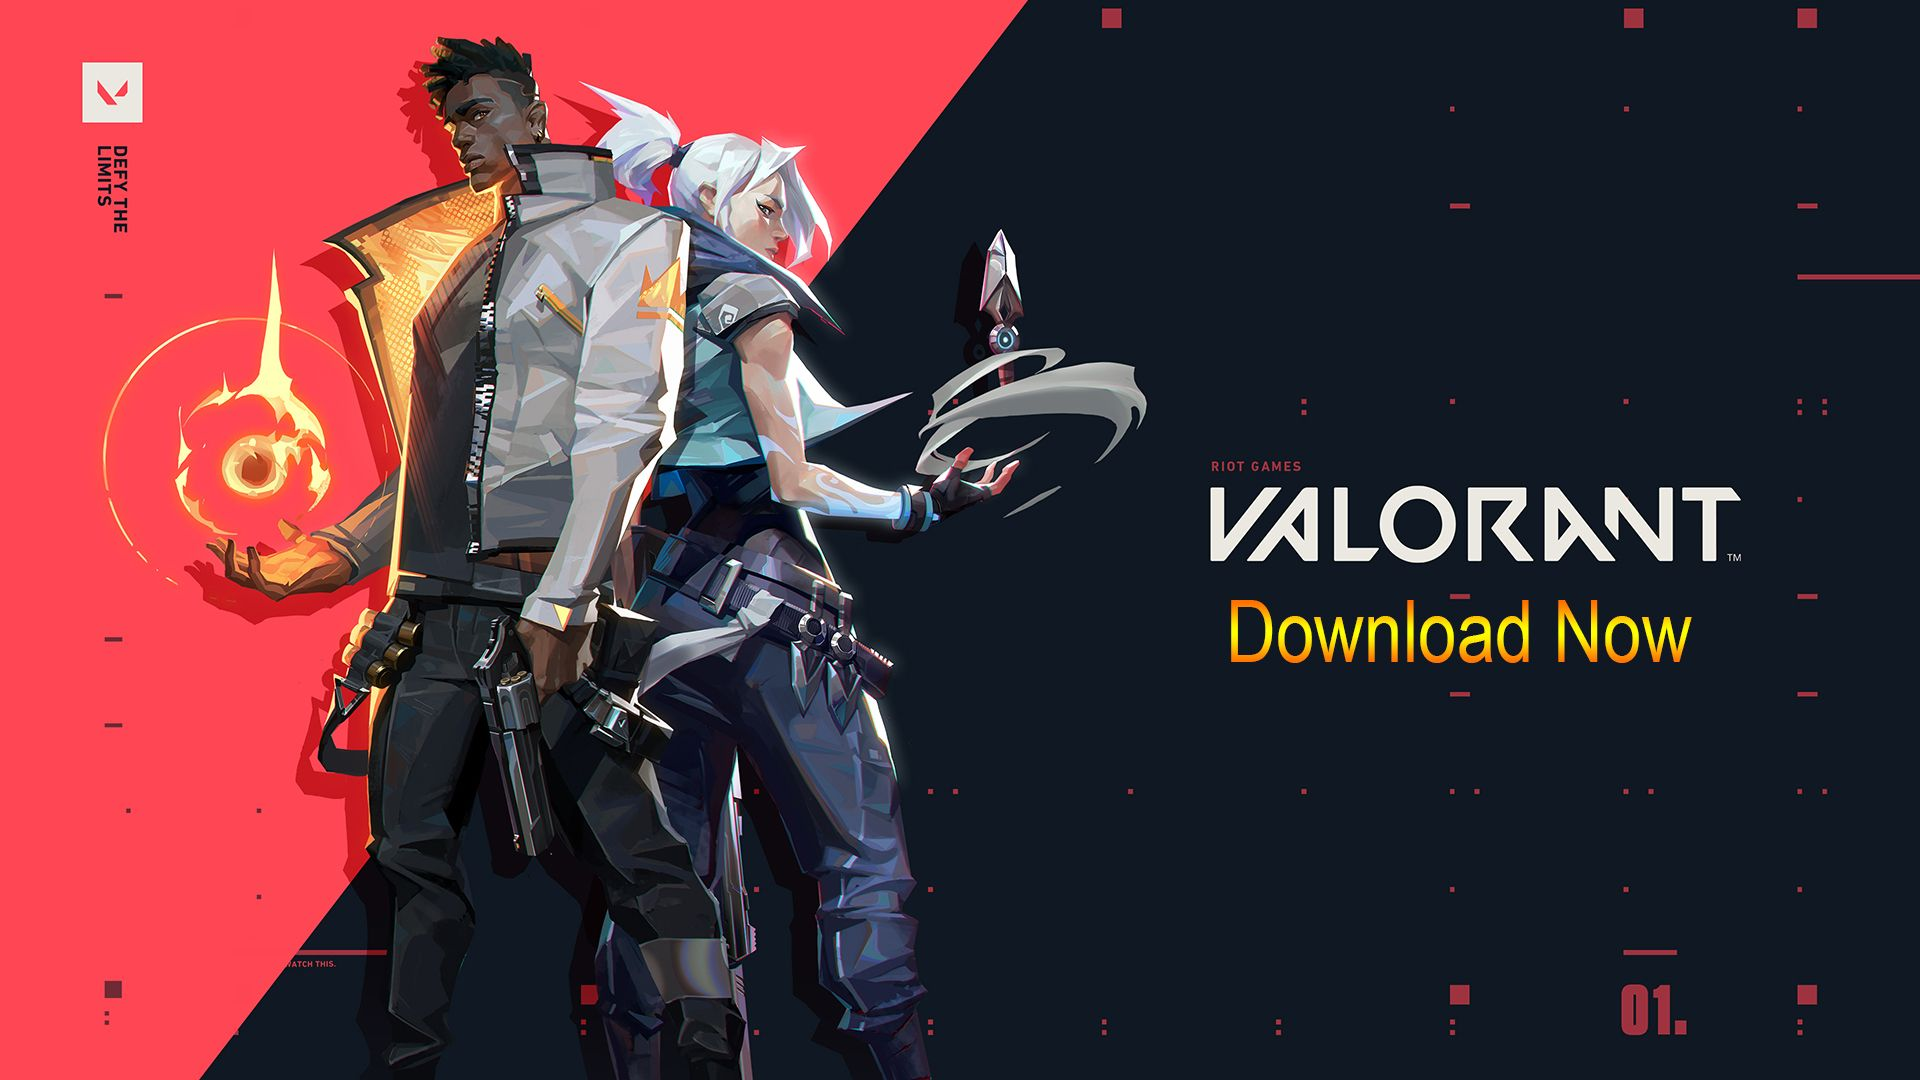 Valorant wallpaper HD phone backgrounds Characters logo